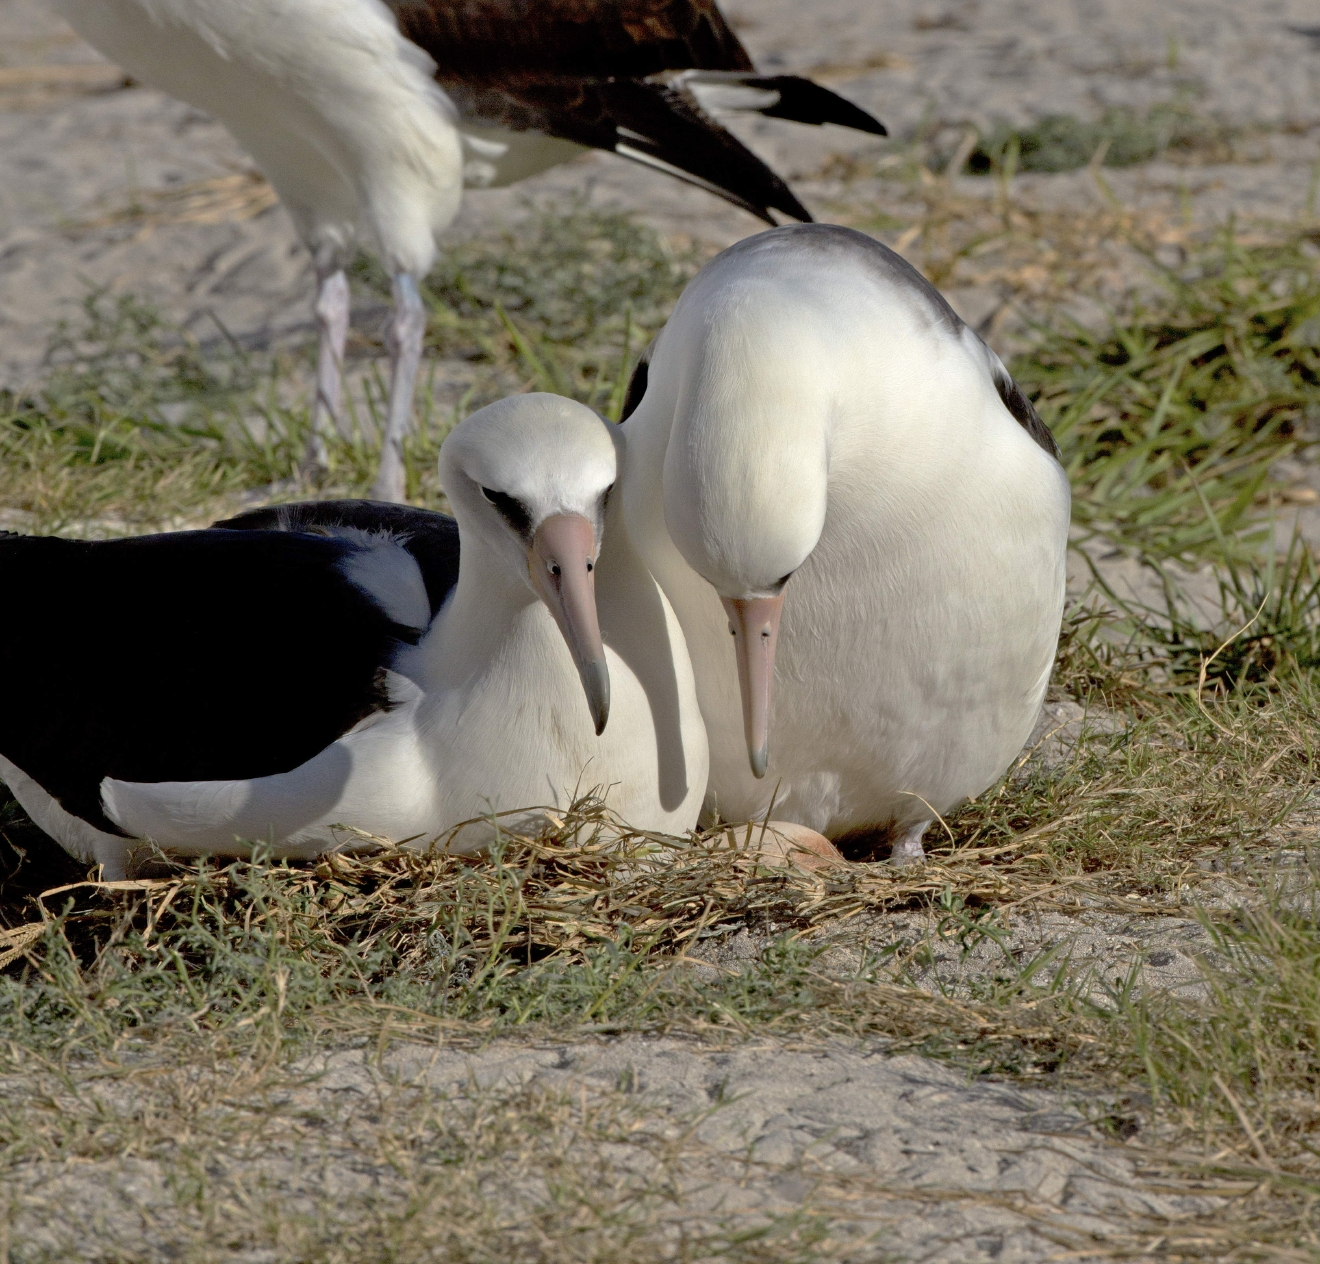 This Nov. 28, 2015 photo provided by the U.S. Fish and Wildlife Service shows the world's oldest known seabird, Wisdom, right, tending to an egg she laid, with her mate, at Midway Atoll, a wildlife refuge about 1,200 miles northwest of Honolulu. Biologists spotted the Laysan albatross called Wisdom at Midway Atoll National Wildlife Refuge earlier this month after she returned to the island to nest. She was incubating an egg at the same nest she uses each year with her mate. She's believed to be 66 years old. She's also the world's oldest known breeding bird in the wild. (Dan Clark/U.S. Fish and Wildlife Service via AP)